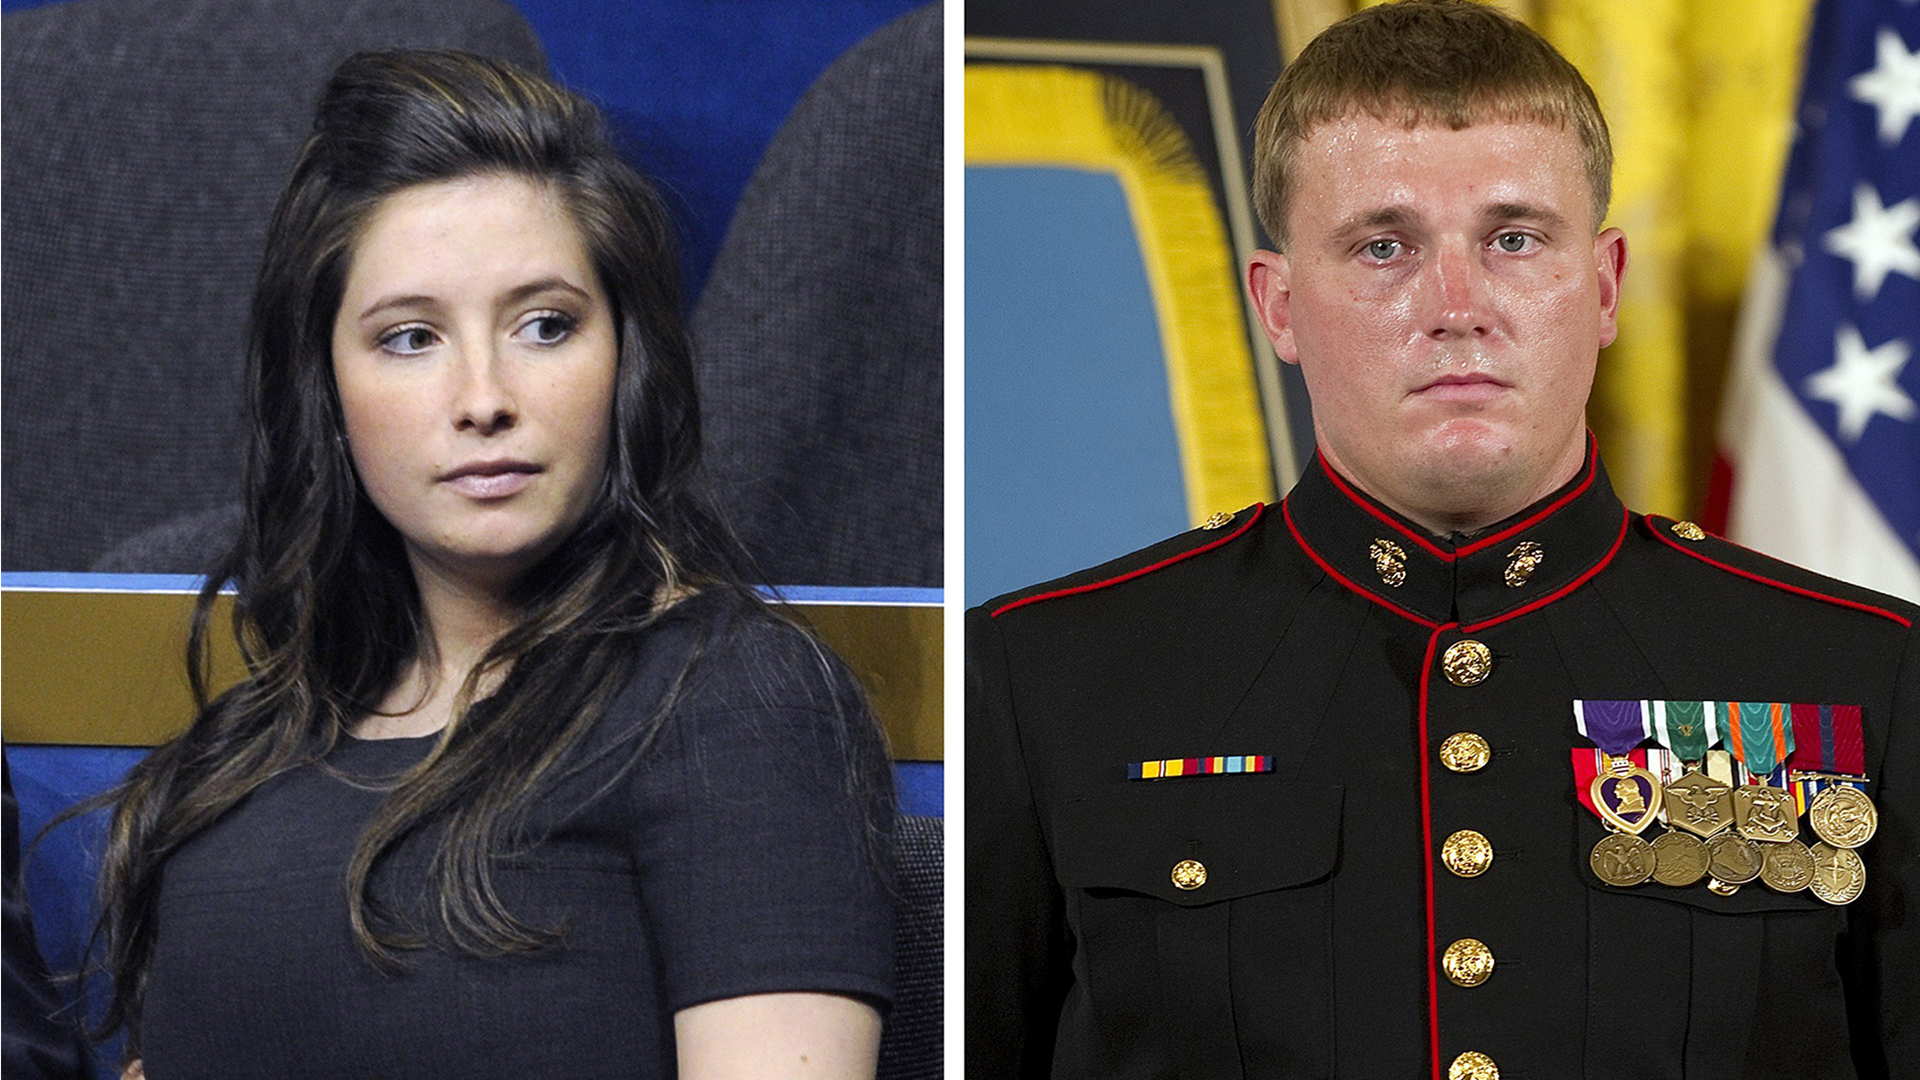 Bristol Palin's Wedding 'will Not Be Held' Sarah Palin